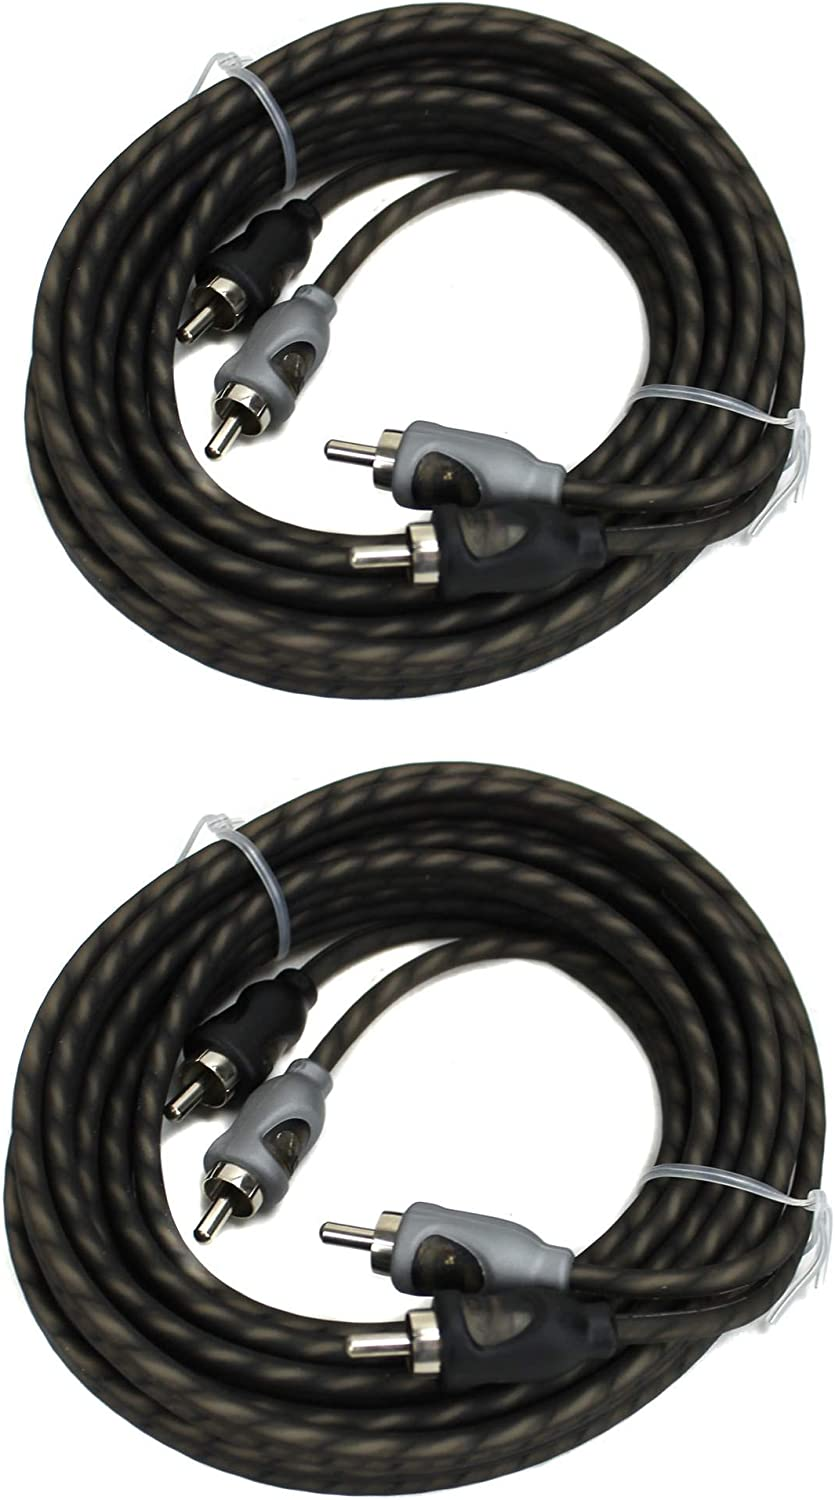 2) Rockford Fosgate RFI-10 10' Feet 2 Channel RCA Car Audio Signal Cables RFI10